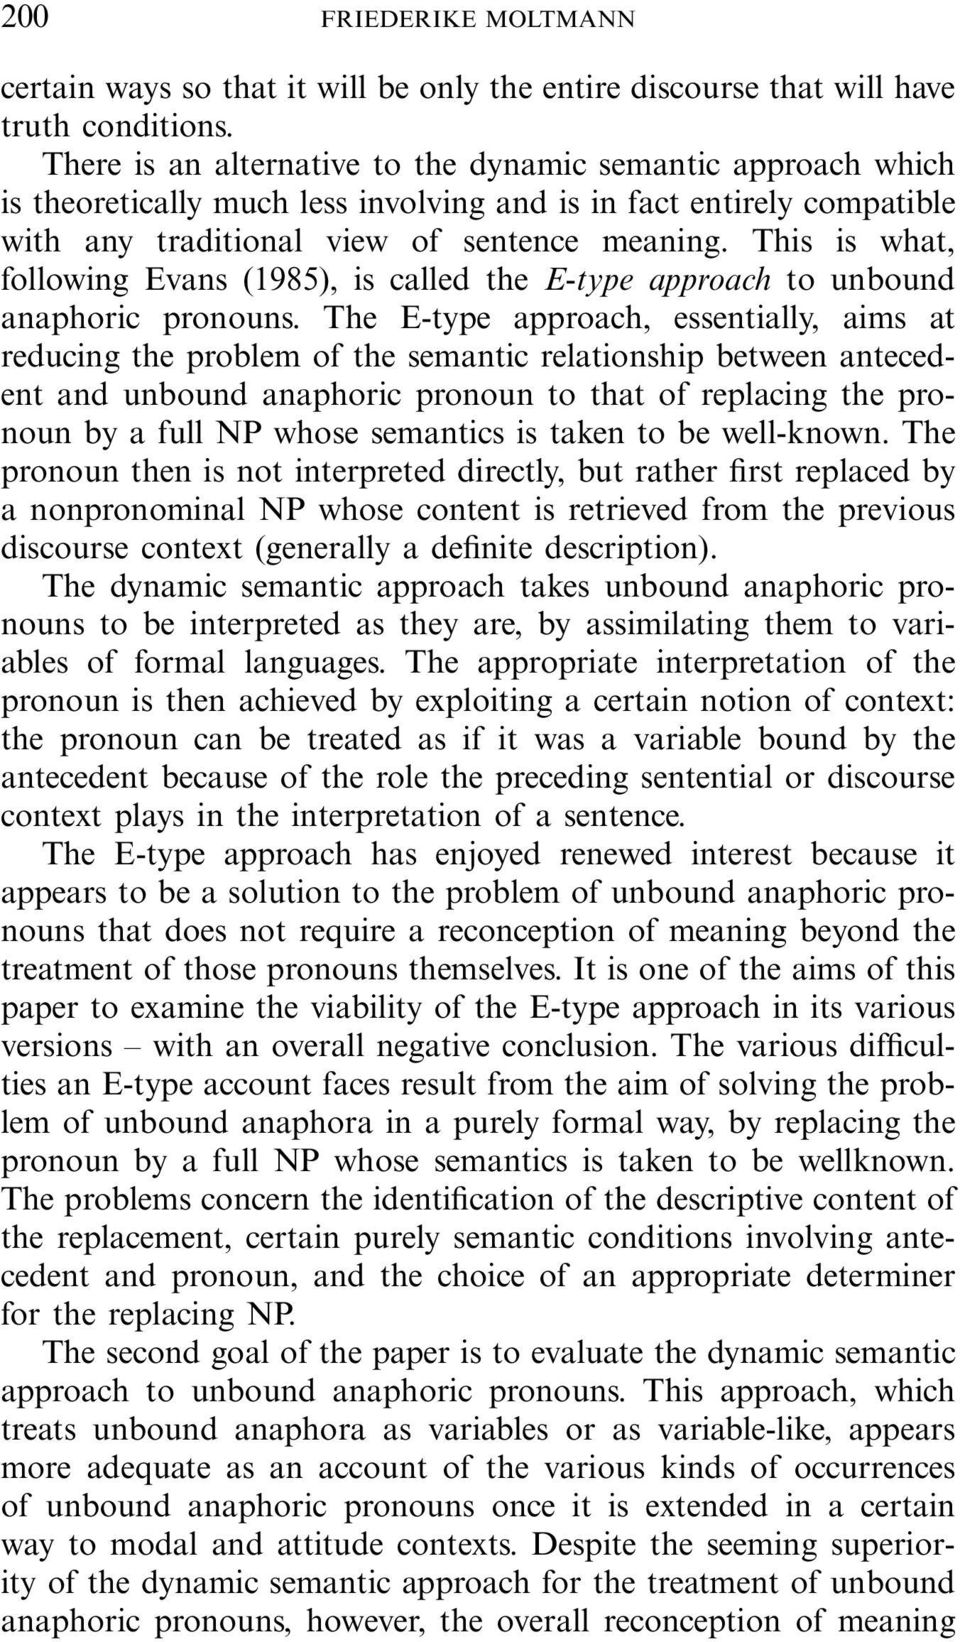 This is what, following Evans (1985), is called the E-type approach to unbound anaphoric pronouns.